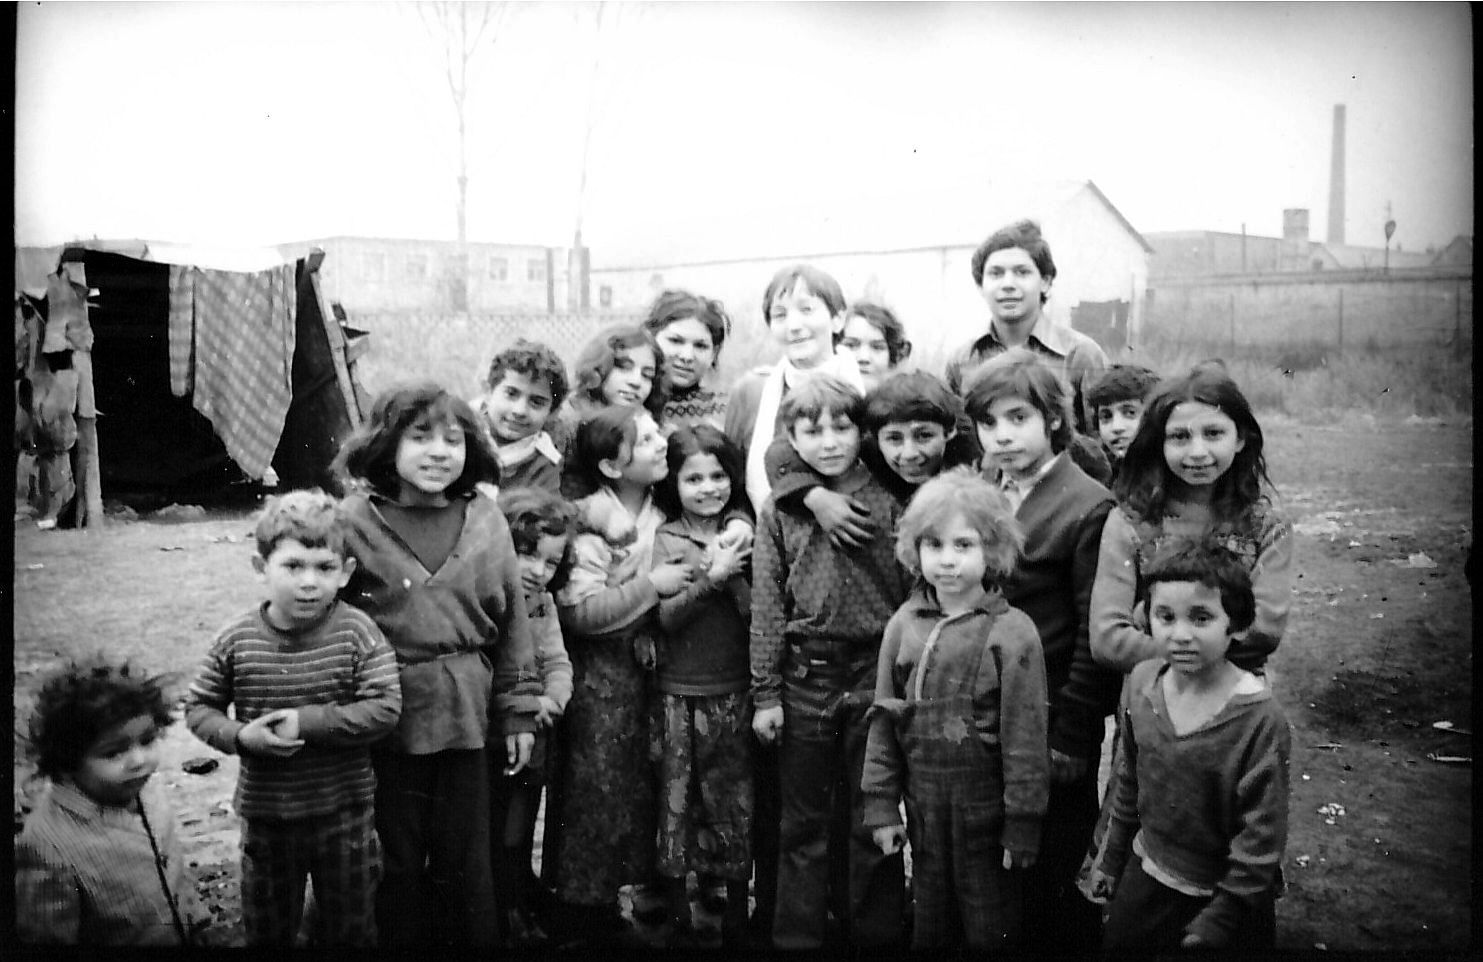 Children in a Gipsy colony in Esztergom-kertváros, Hungary, 1977Up in the middle can be seen sociologist Ottília Solt, who two years later founded SZETA together with seven friends.